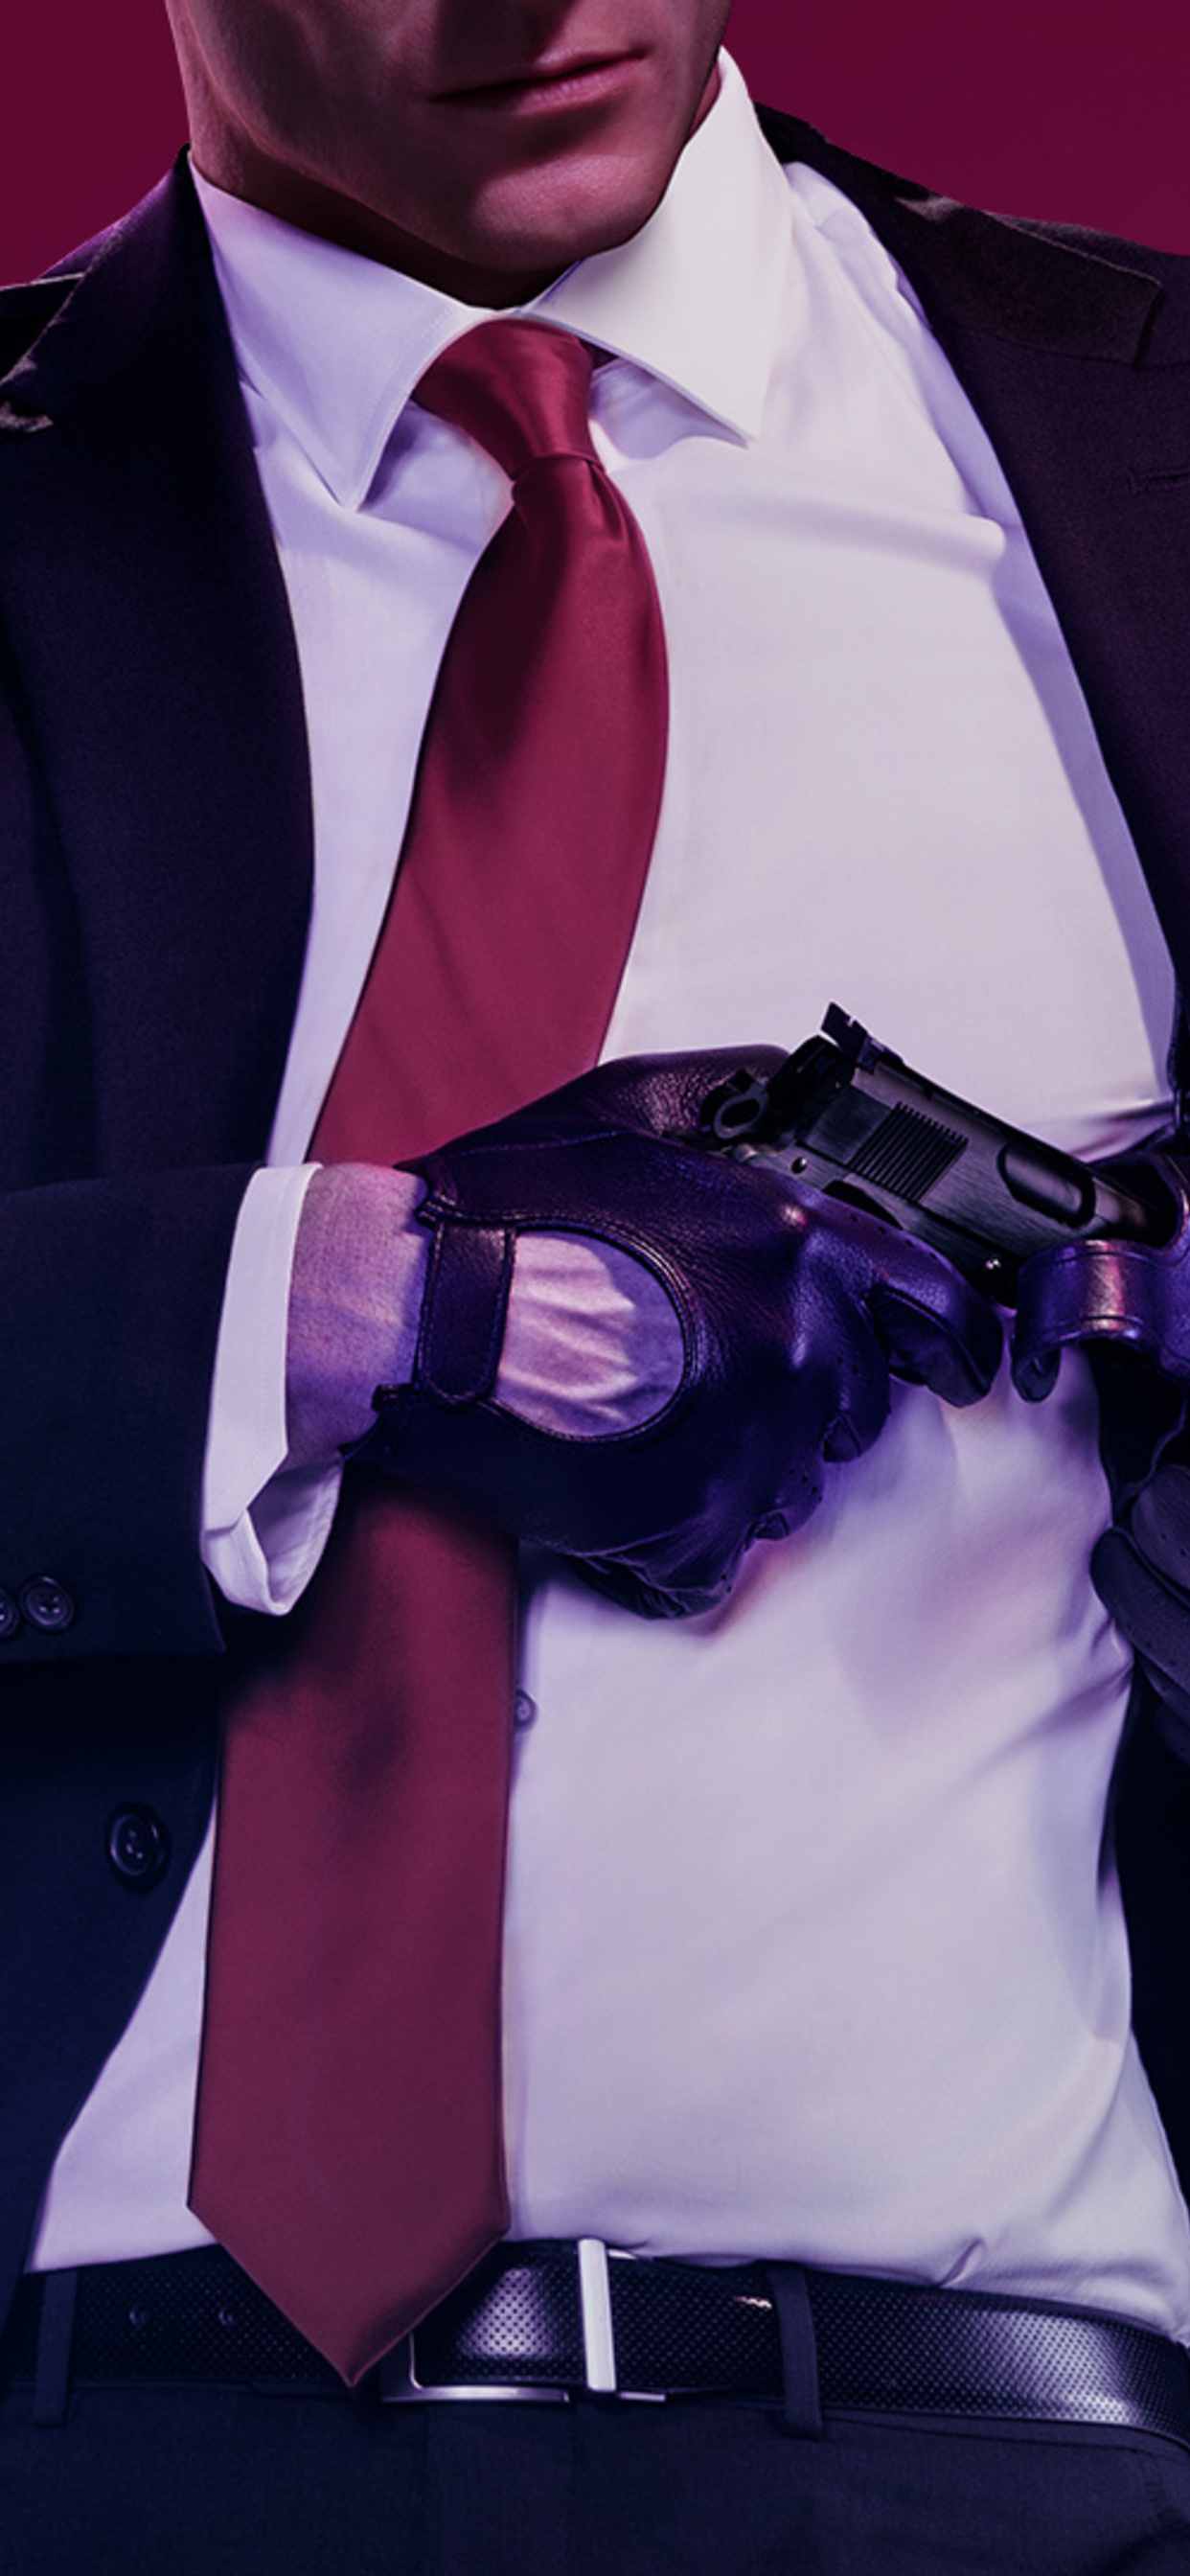 1242x2688 Hitman 2 Iphone Xs Max Hd 4k Wallpapers Images